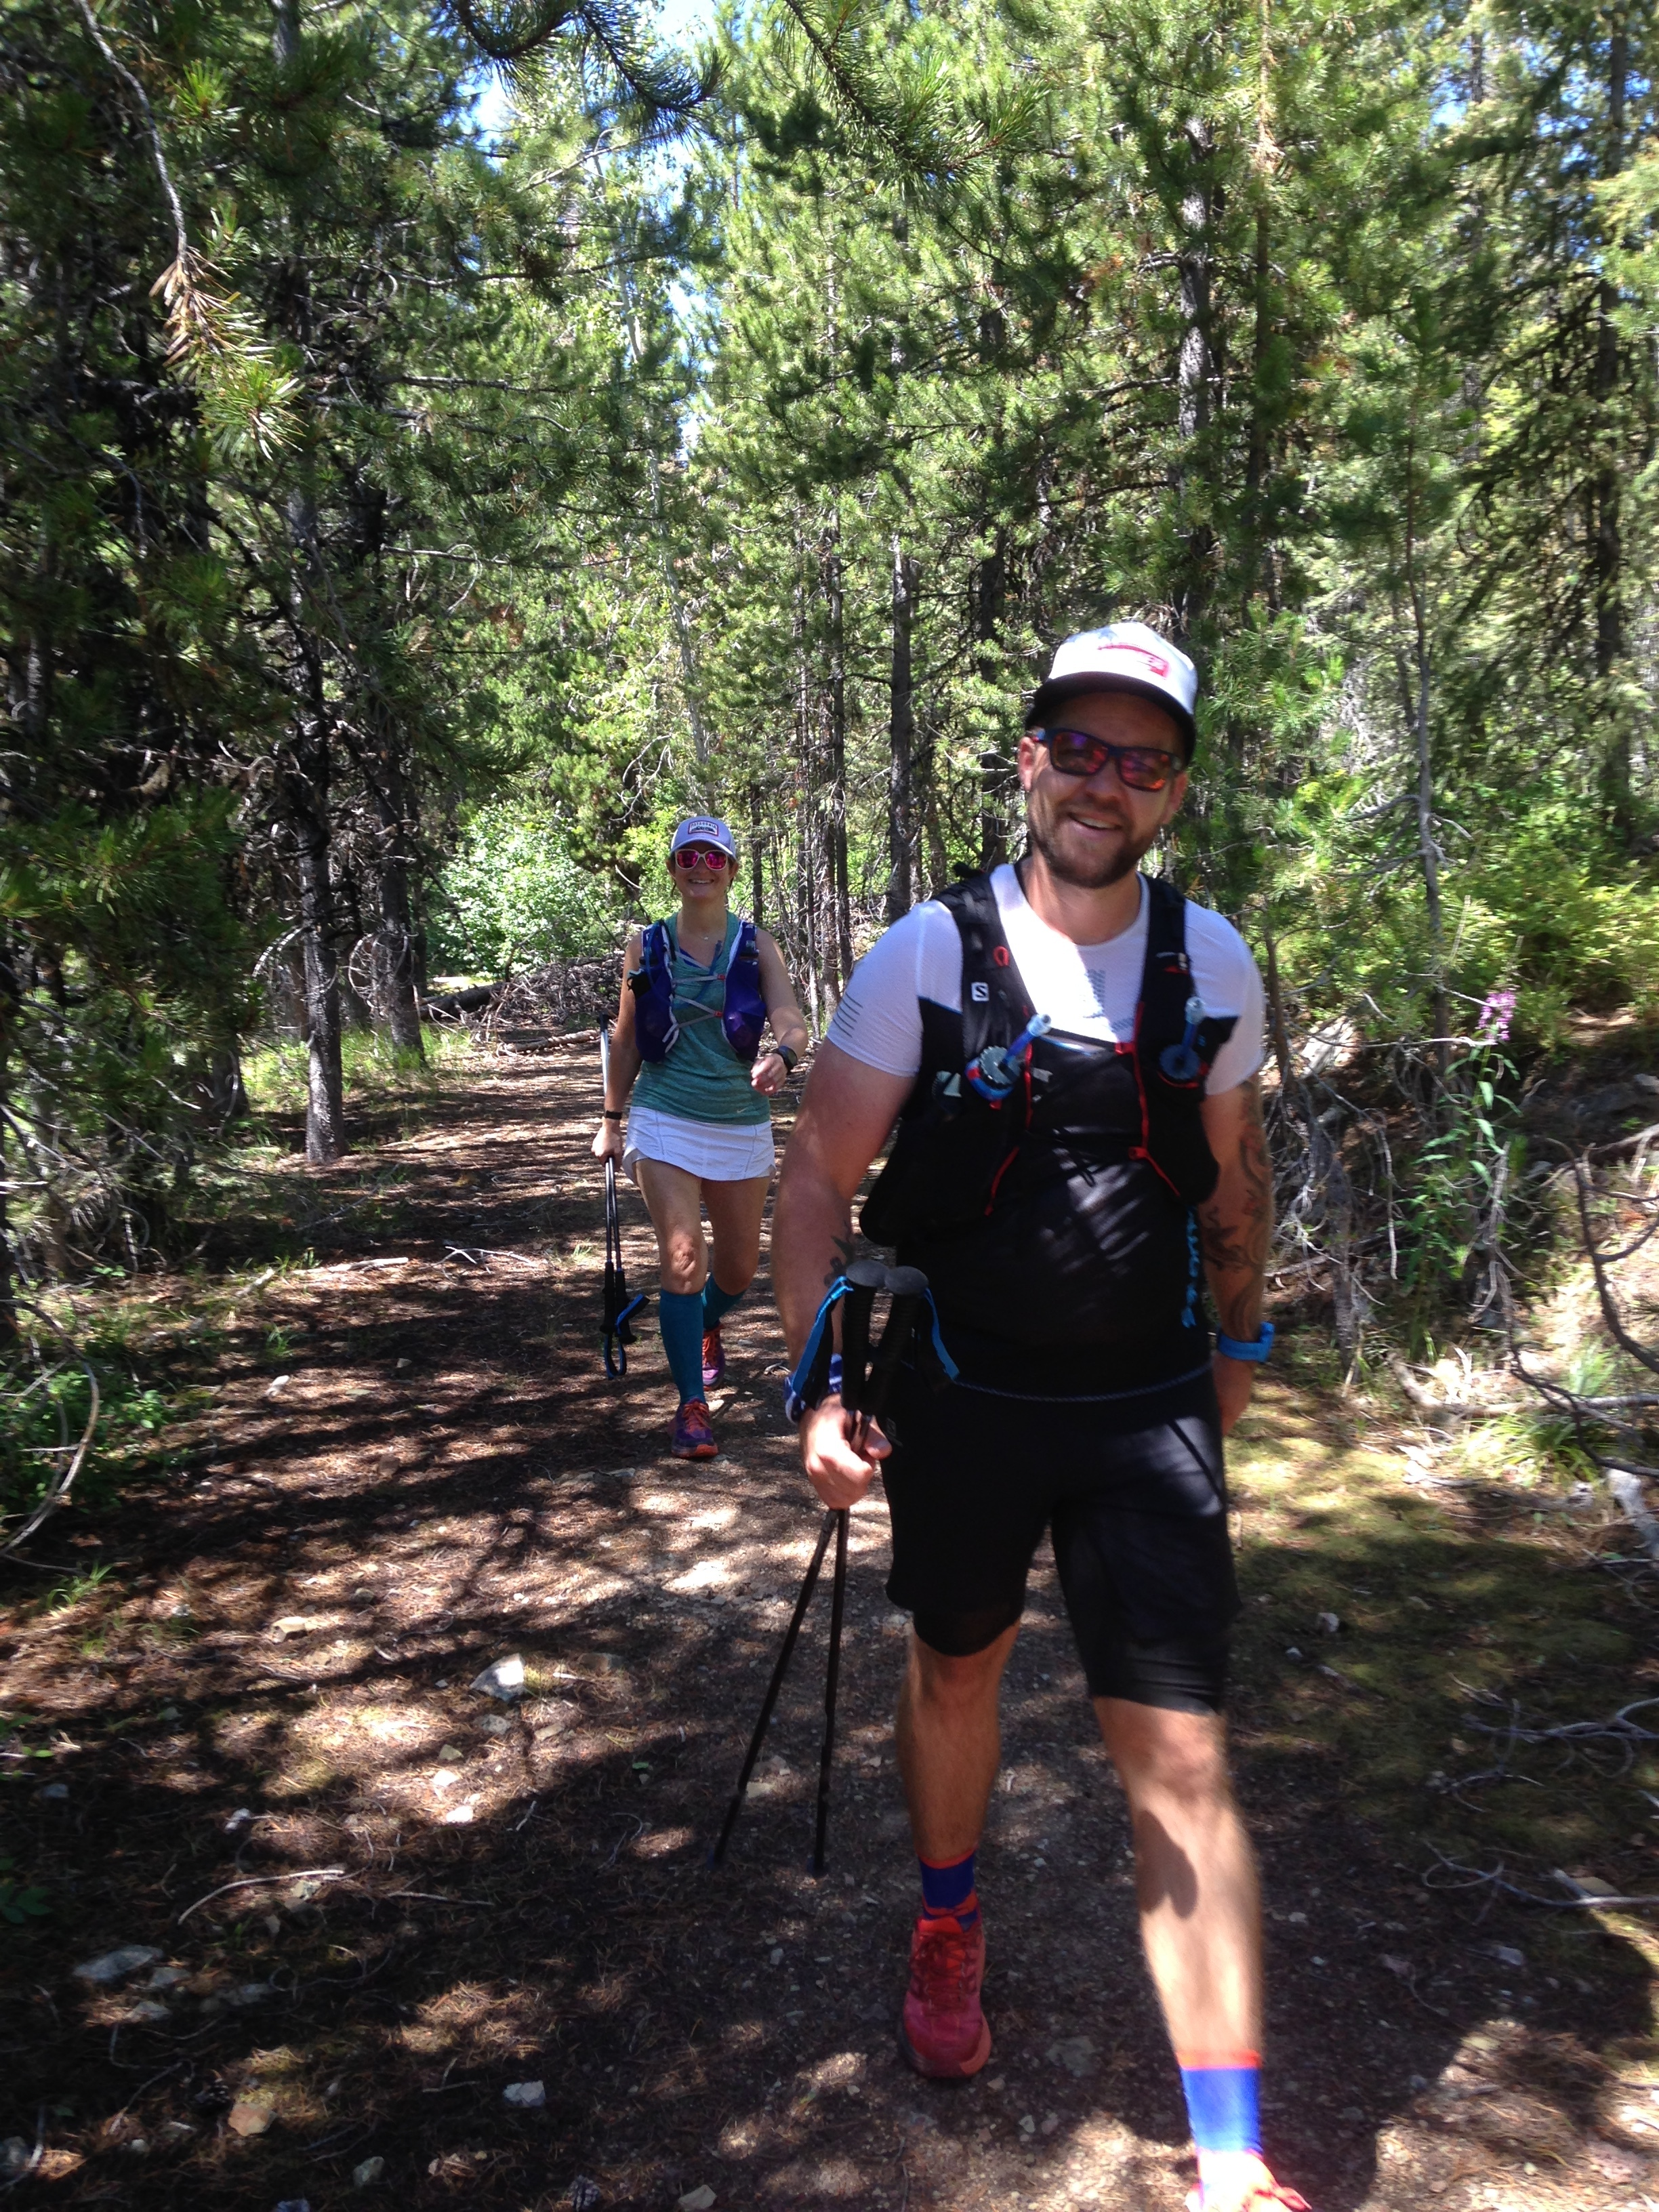 Sam and I coming into the halfway point at Sheep Mountain TH.